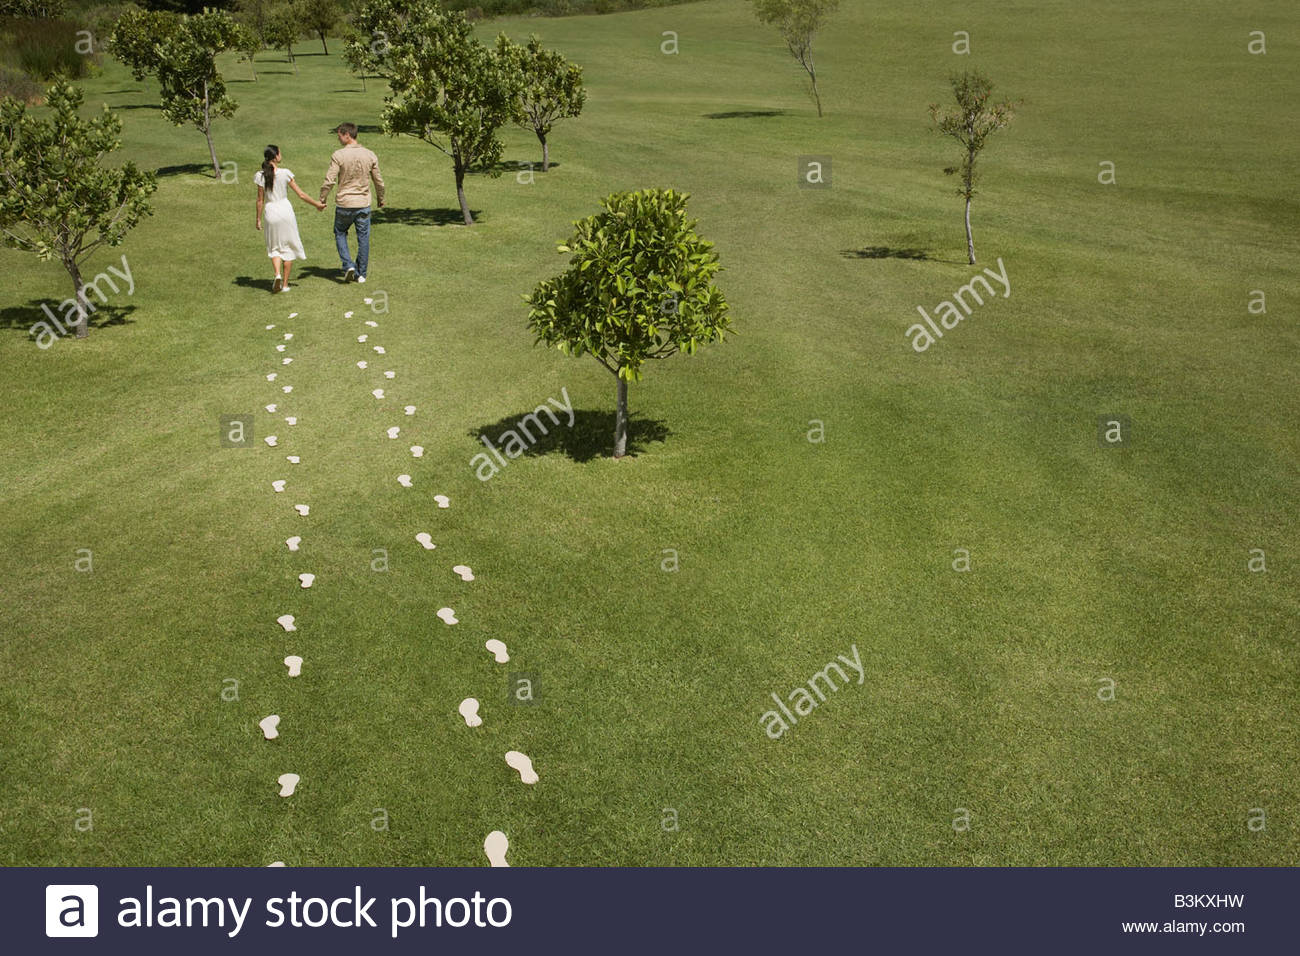 Couple walking through field trailing footprints Stock Photo